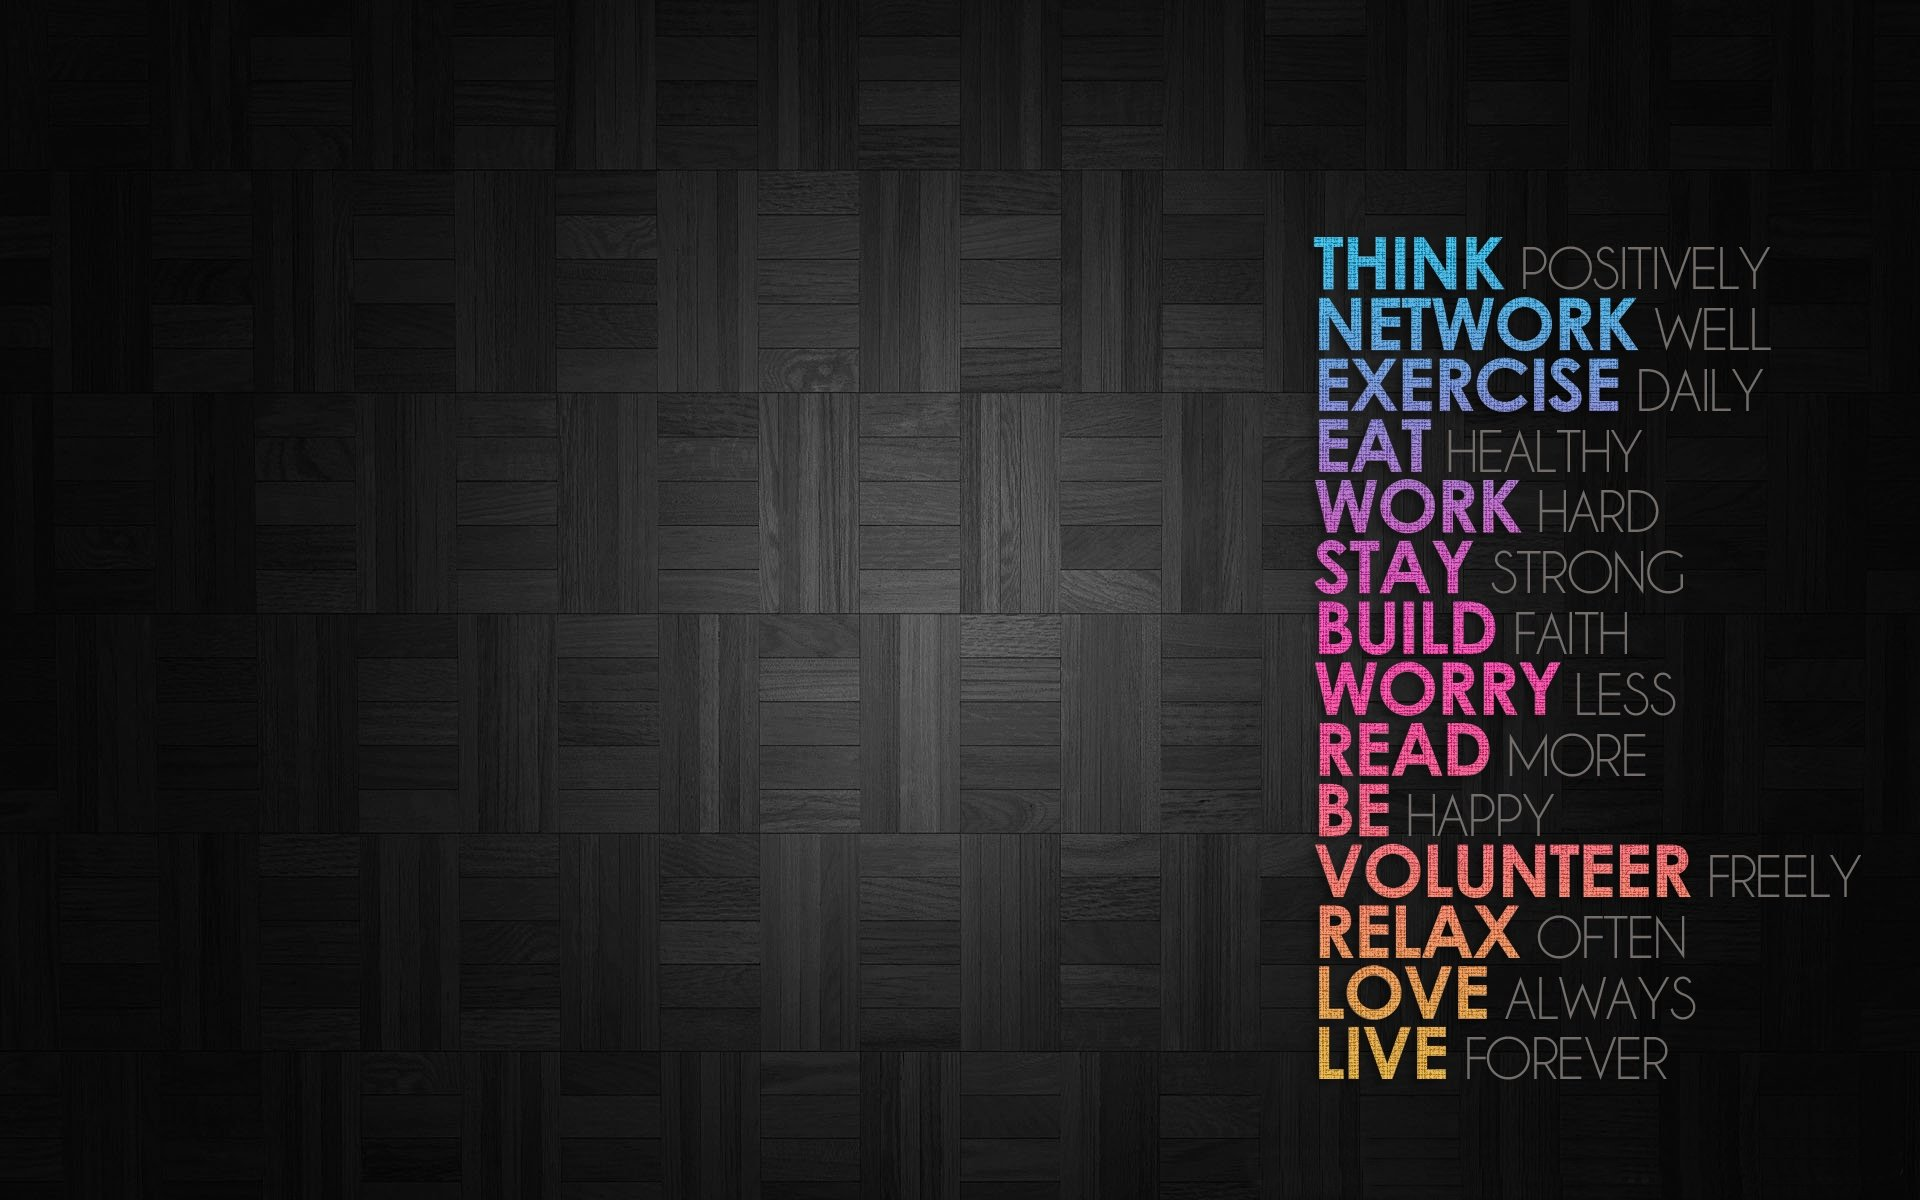 Positive Wallpaper Quotes Desktop Download HD Wallpapers 1920x1200